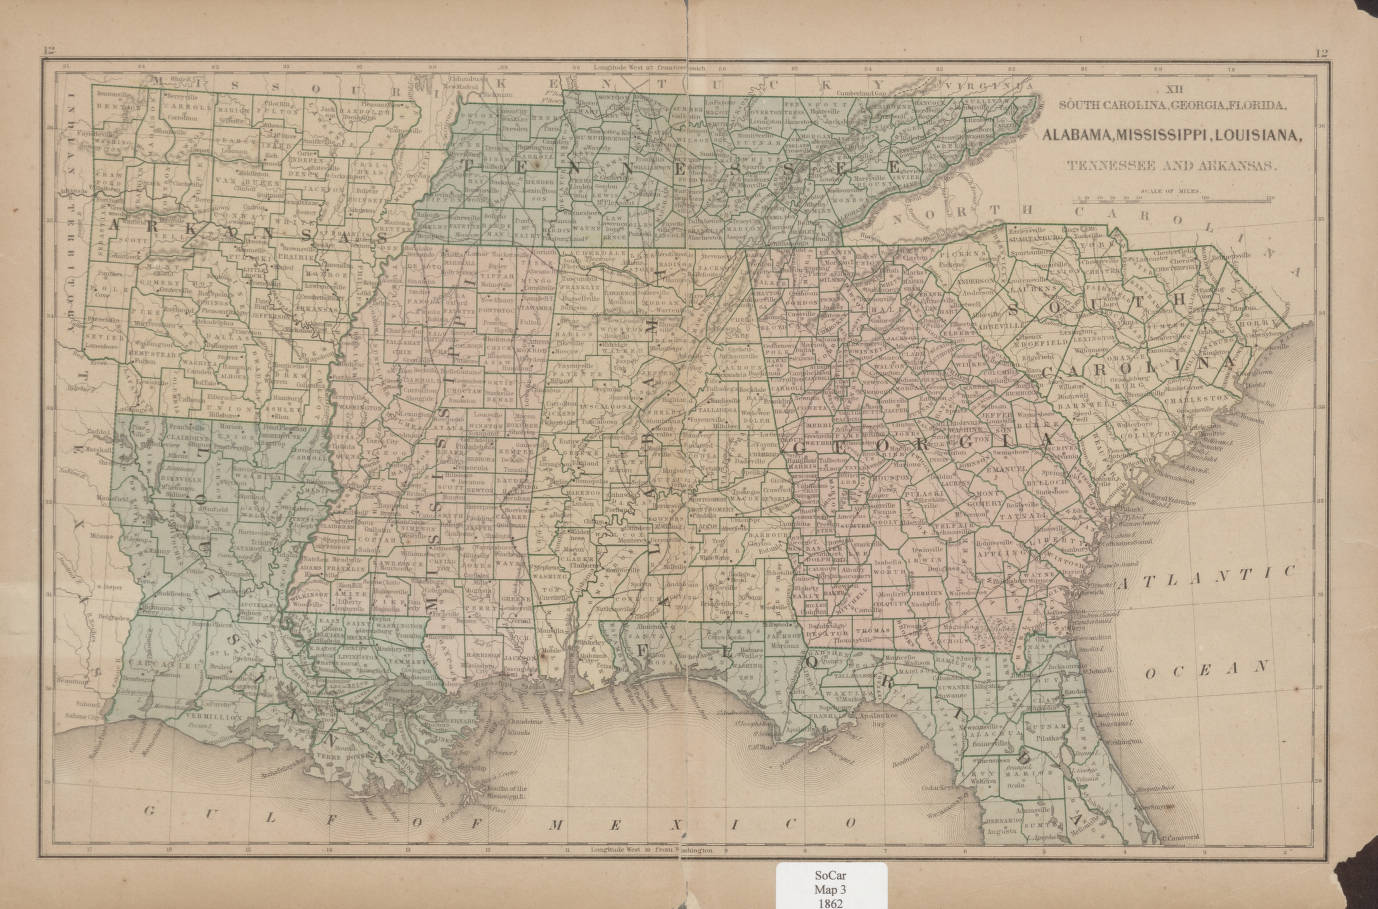 South Carolina, Georgia, Florida, Alabama, Mississippi ... on ky and tn, map of alabama and ms, map of kentucky and tenn border, map of florida georgia and tennessee, 1940 map nashville tn, map of carolina's and georgia, map florida to tennessee, map of alabama and ge, map of florida alabama border, map of alabama and surrounding states, map of north alabama and tennessee, map of tennessee alabama border, map of haleyville alabama,